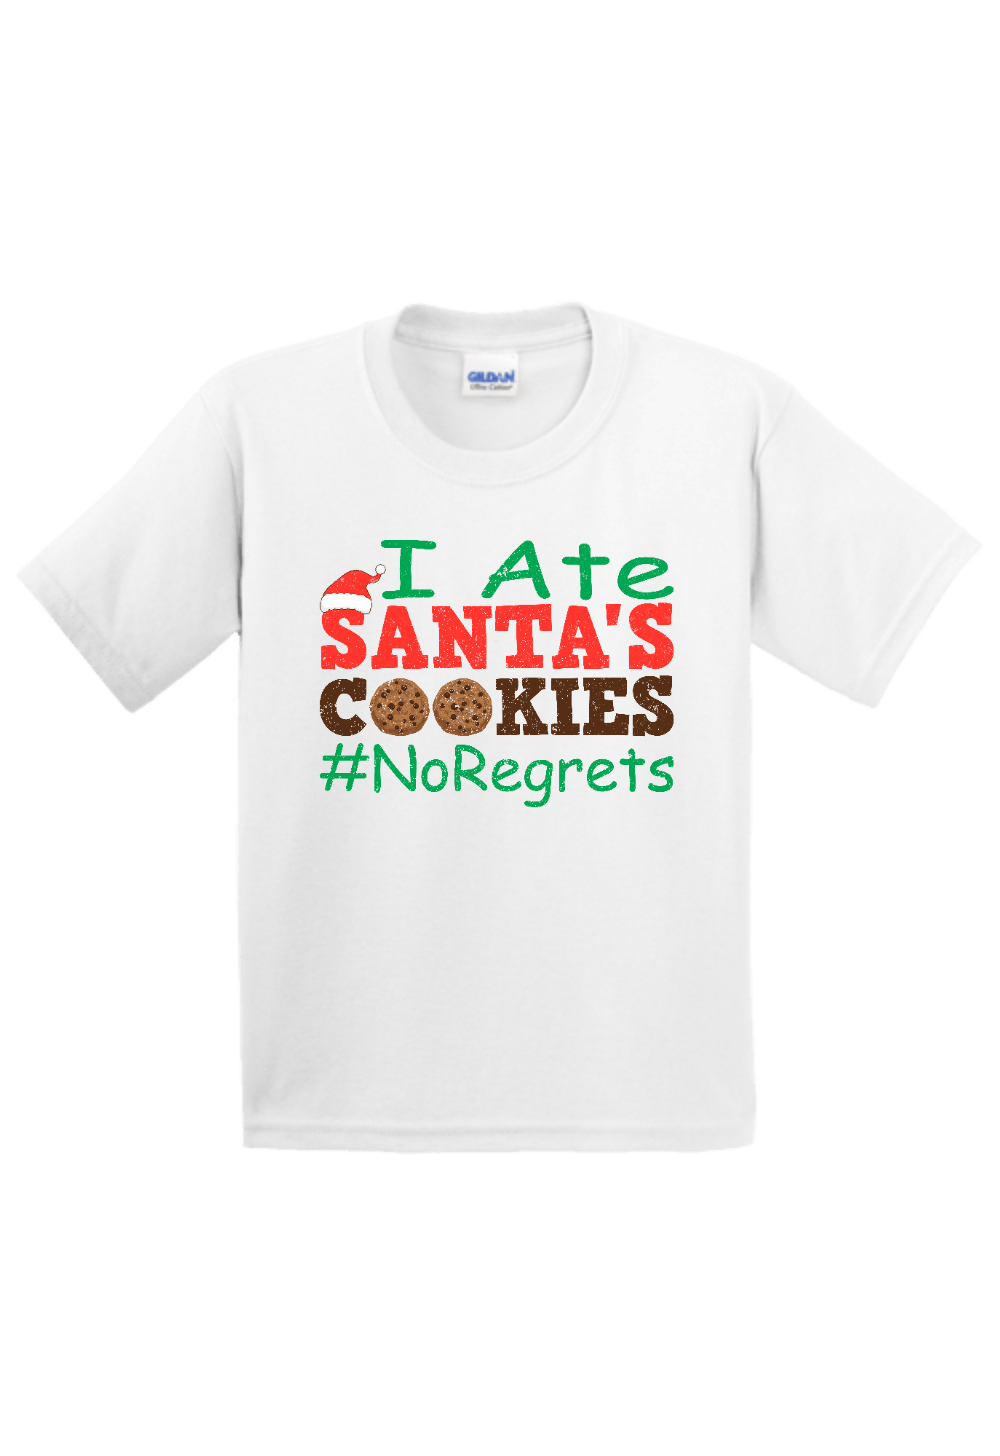 I Ate Santa's Cookies Youth Christmas Shirt